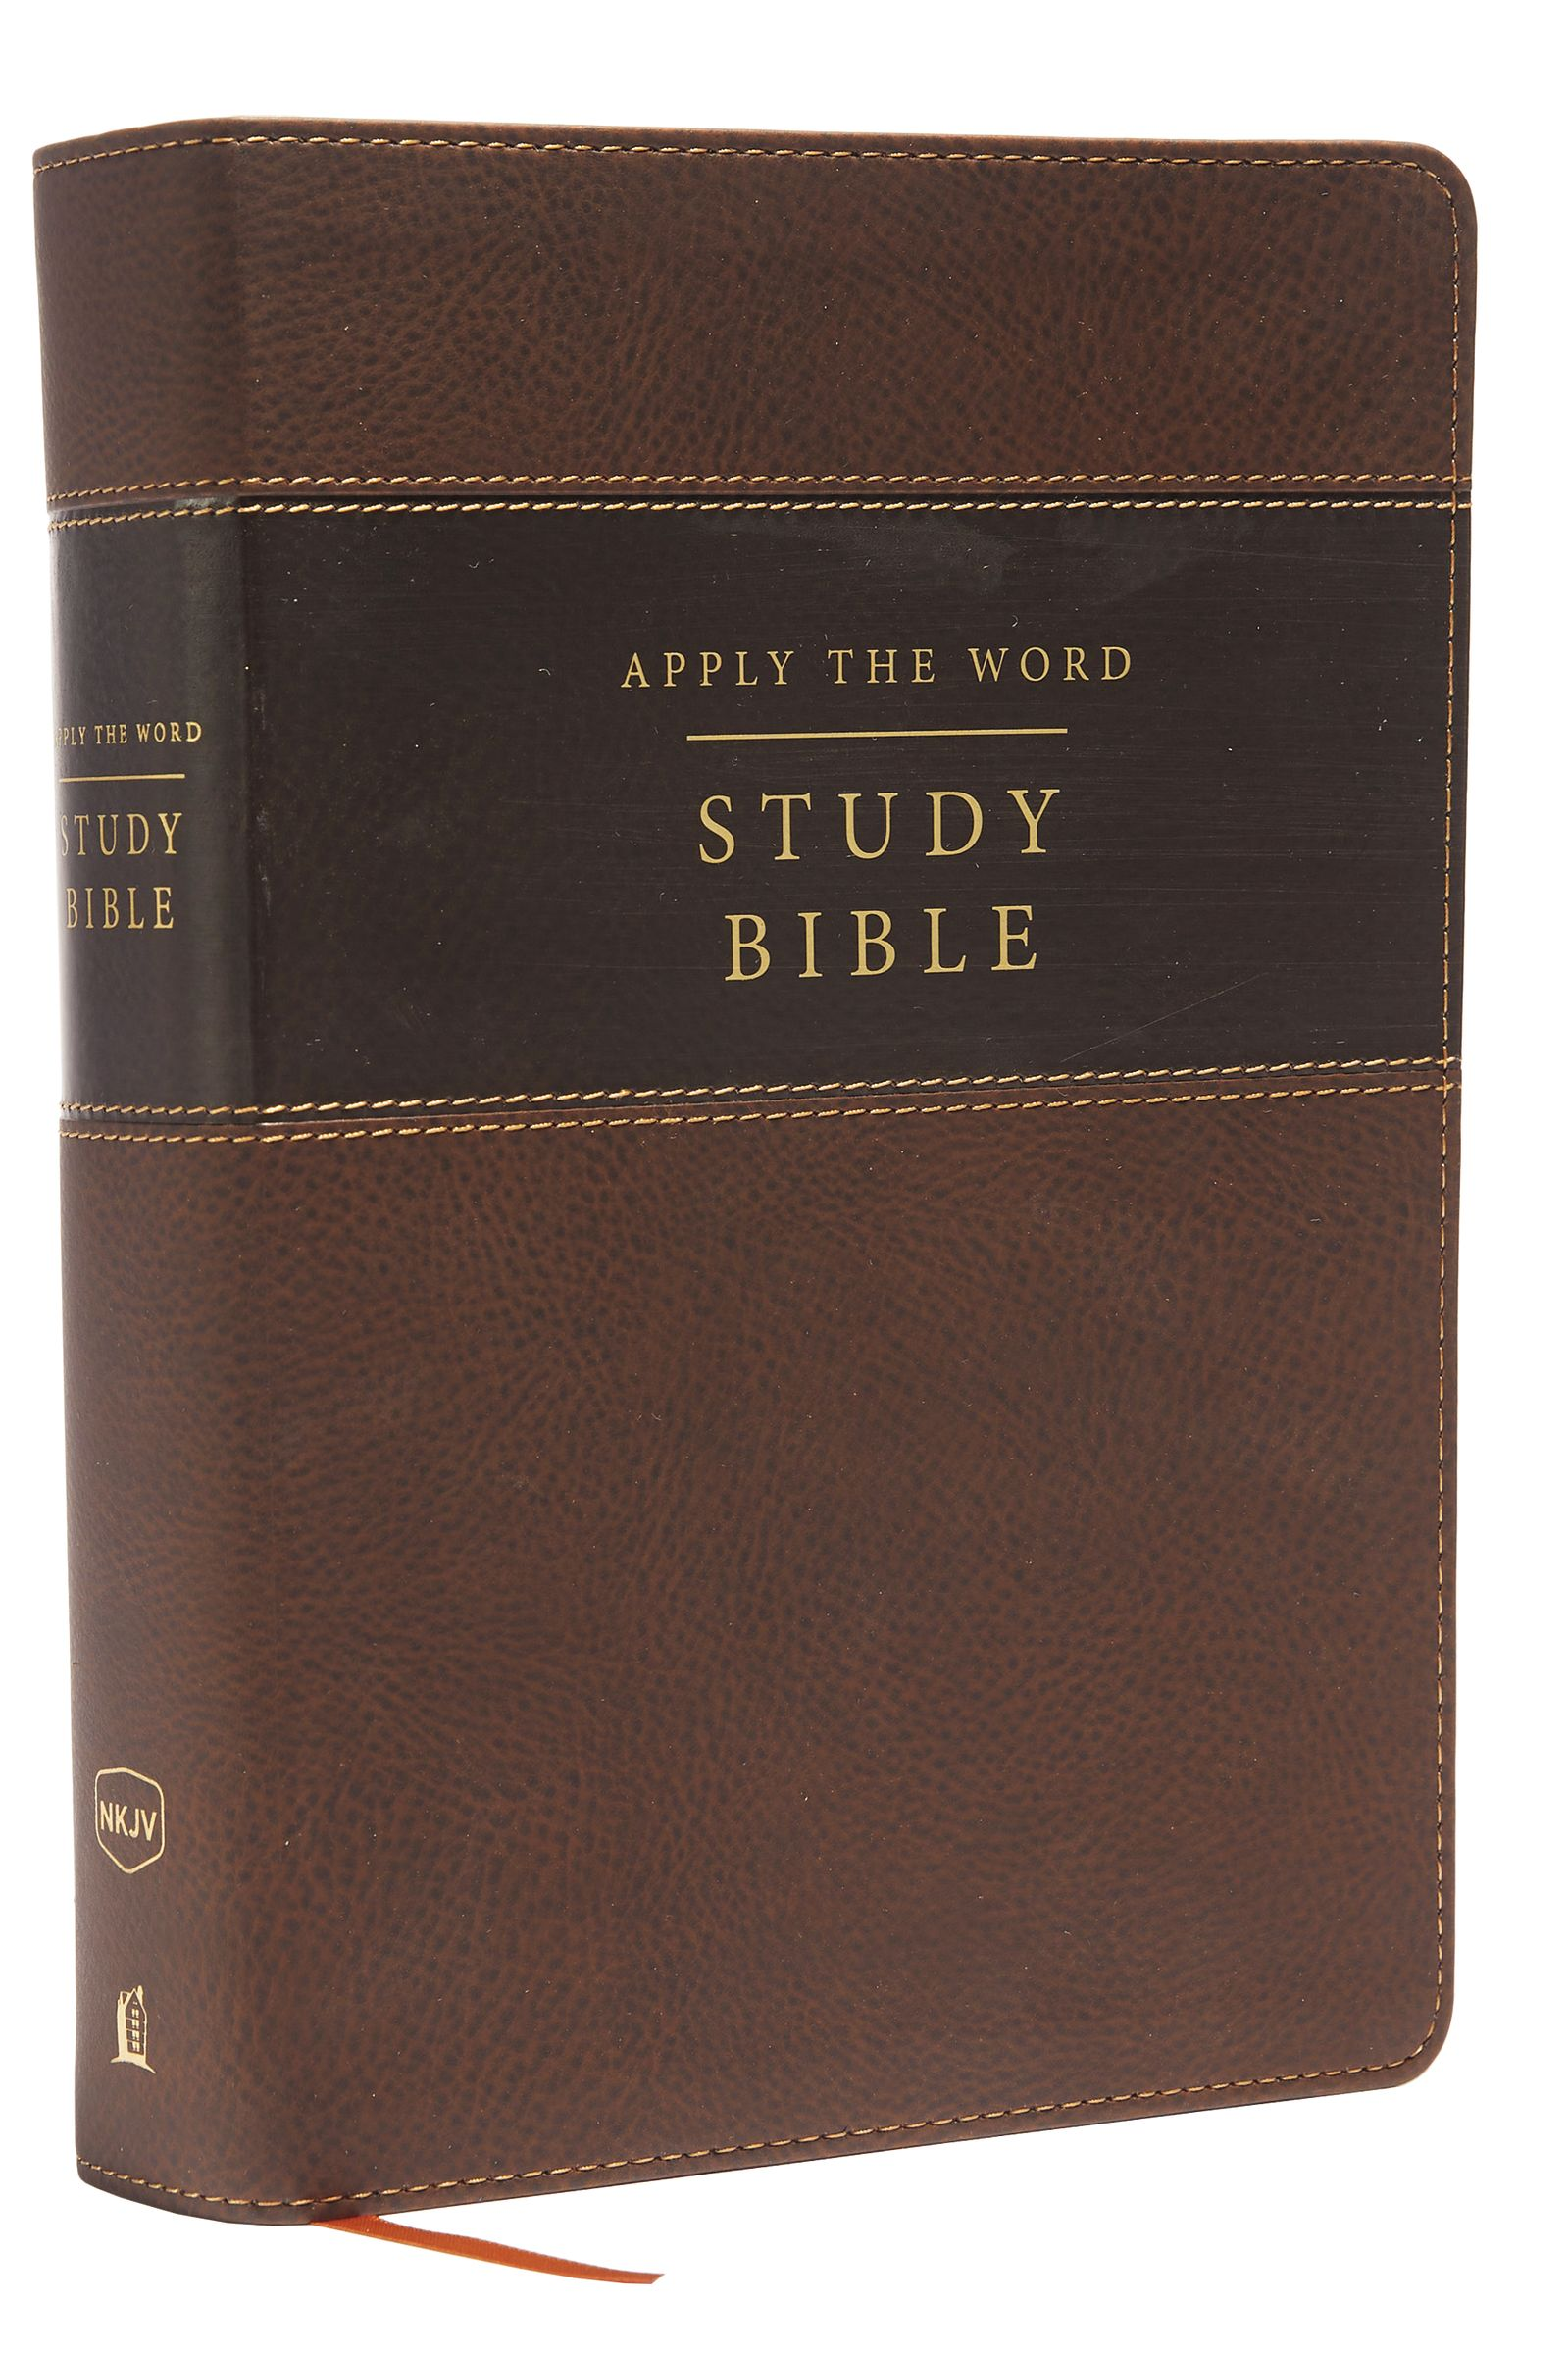 Thomasnelson nataraj books nkjv apply the word study bible large print leathersoft brown indexed fandeluxe Choice Image